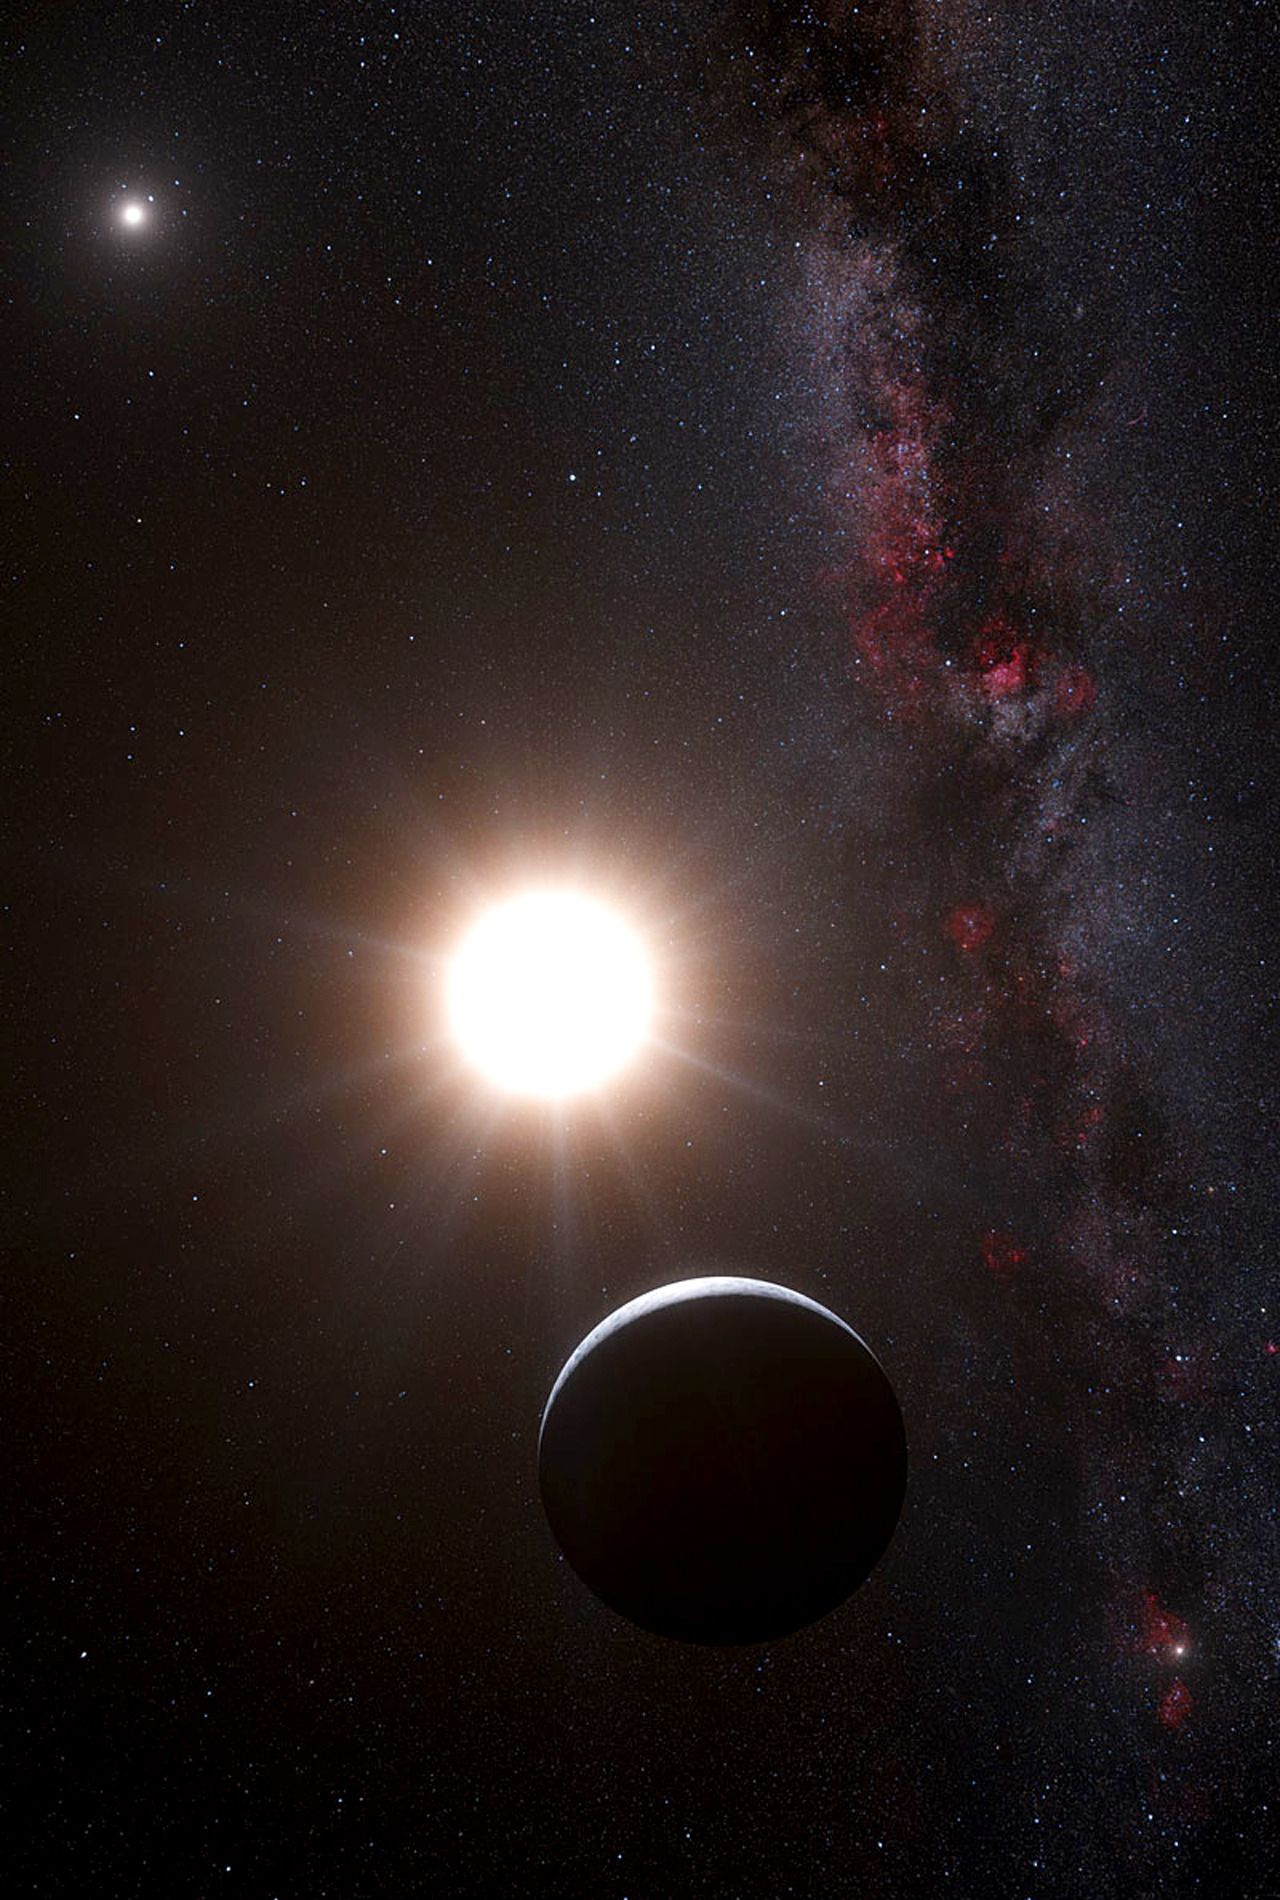 Astronomers at the European Southern Observatory have discovered a planet approximately the same size as Earth orbiting Alpha Centauri B, one of the closest stars to our own. The Alpha Centauri system is only 4.3 light years away, and it is the most logical destination for the first interstellar spacecraft.  Until now no planets had been detected in this system, which has two co-orbiting stars.  The newly discovered planet orbits Alpha Centauri B, which is 90% as massive and 50% as luminous as our Sun.  The planet completes an orbit every 3.2 days at a distance of 0.04 AU, far to close to support liquid water.  However this discovery indicates that Earth-mass planets are within our ability to detect in nearby star systems.  The planet was detected using the HARPS instrument on the 3.6-metre telescope at ESO's La Silla Observatory in Chile. The results will appear online in the journal Nature on 17 October 2012. Read the full paper here